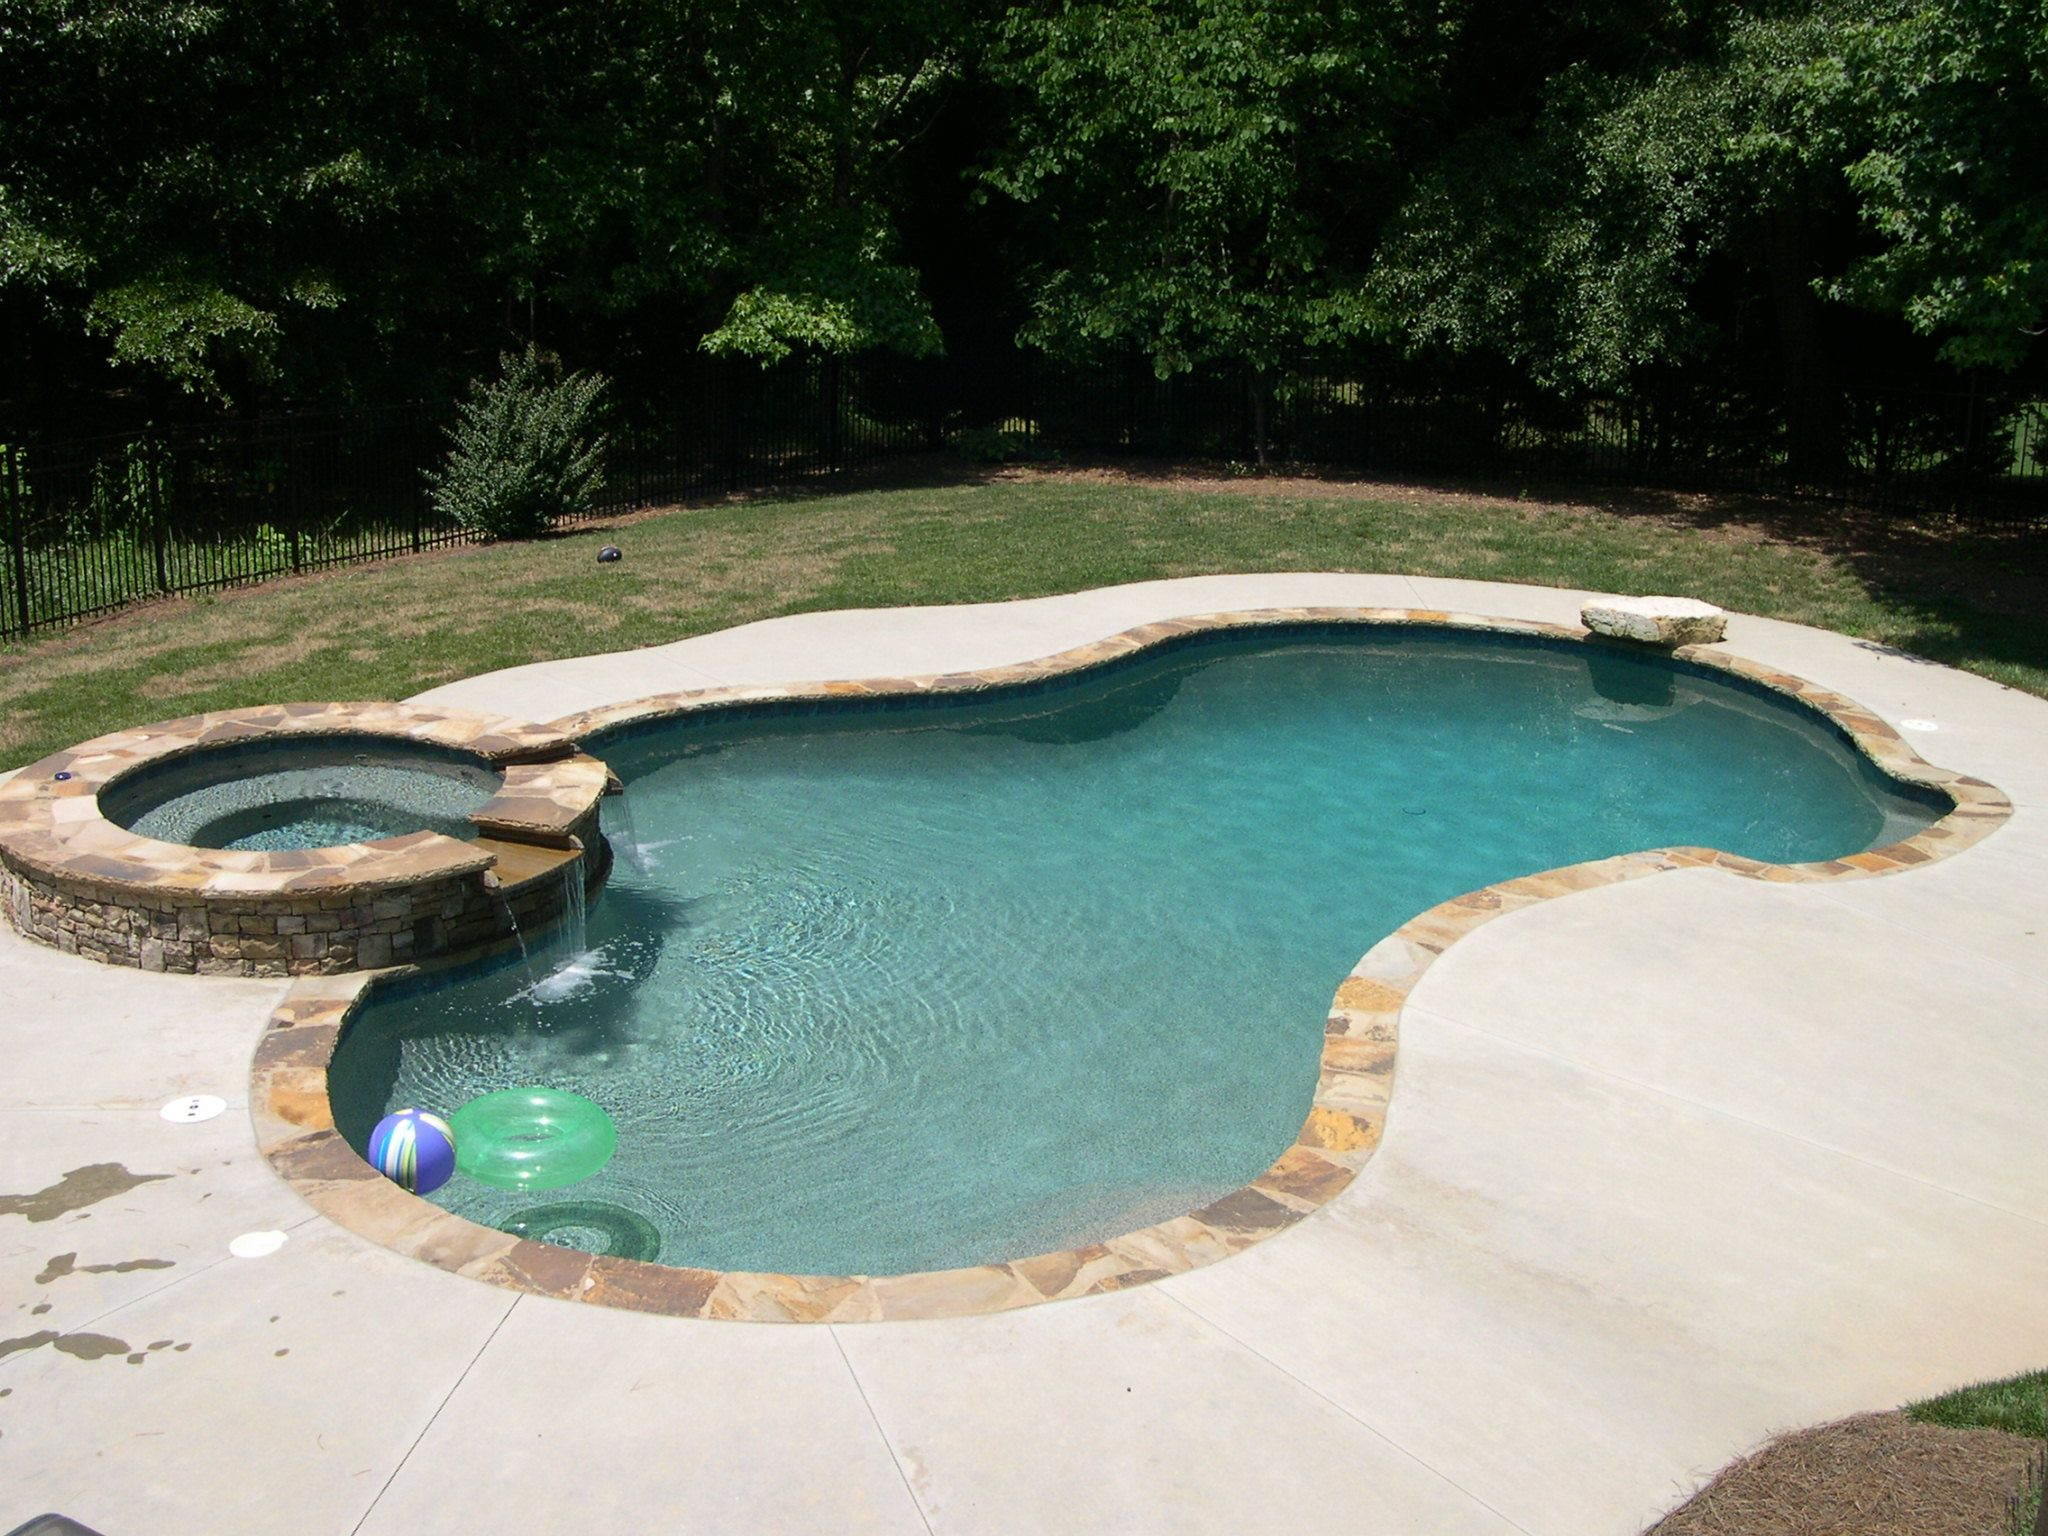 Pool Designs With Spa designs for small yards' small pool designs perth and swimming